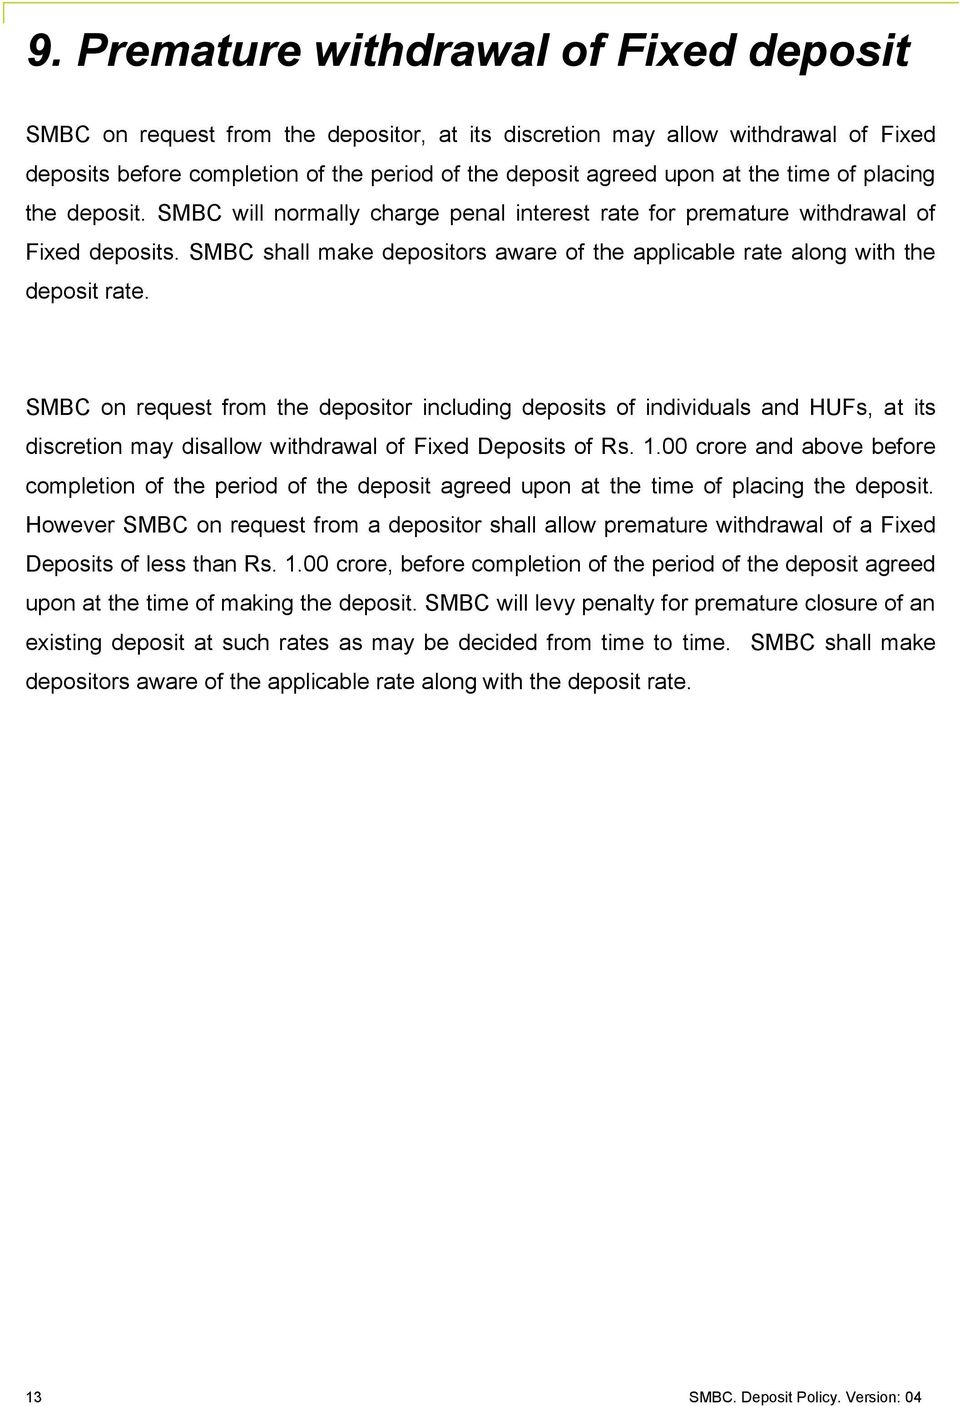 SMBC shall make depositors aware of the applicable rate along with the deposit rate.